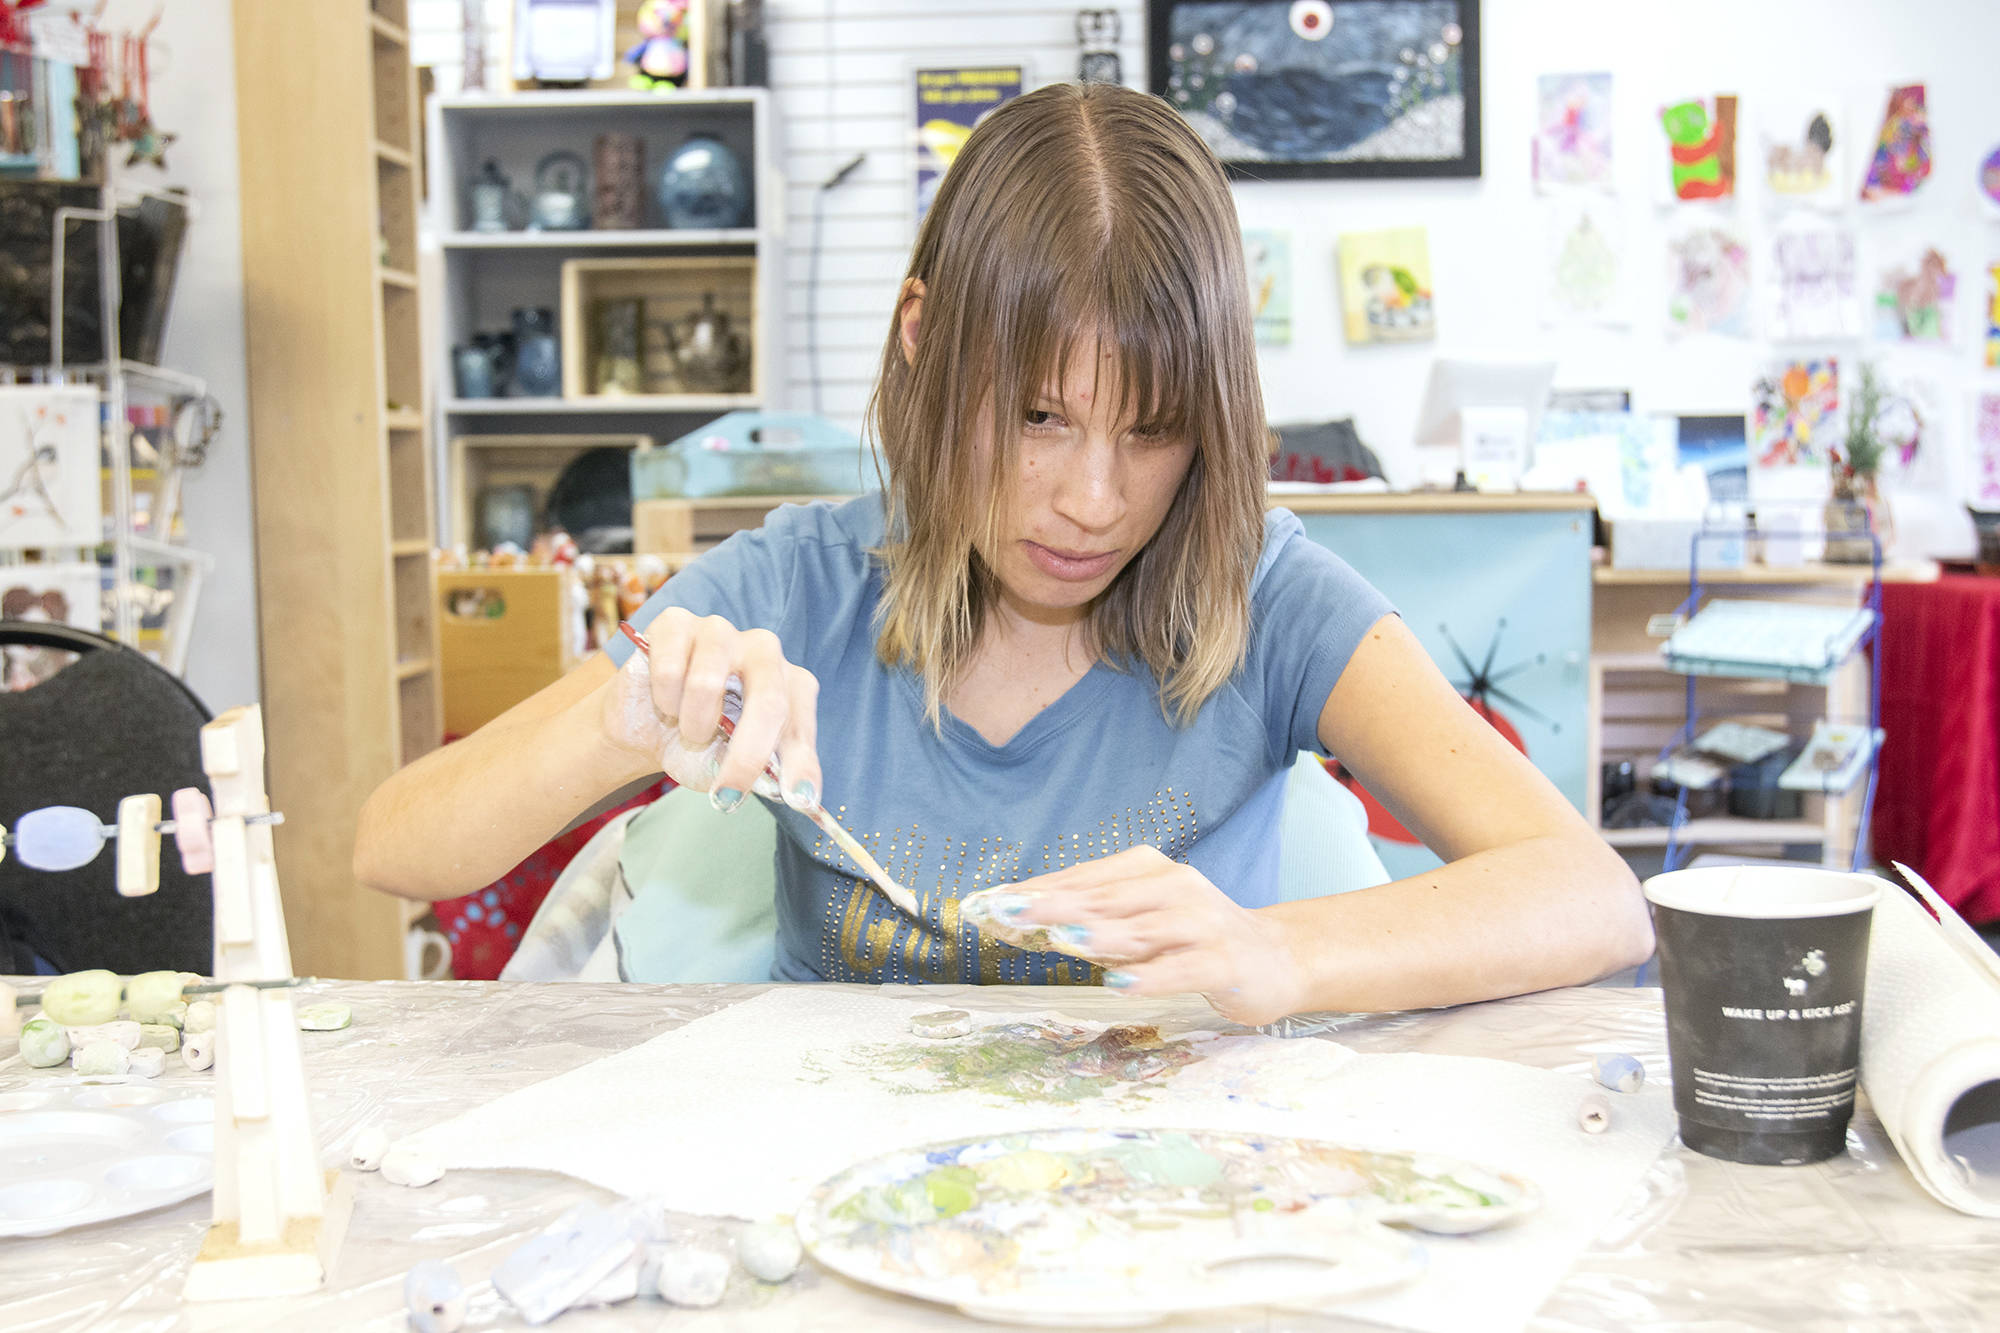 Blind since birth, Jody Hanna has found a way to let her creativity shine at Salmon Arm's Inclusive Arts on Hudson Avenue. (Jodi Brak/Salmon Arm Observer)